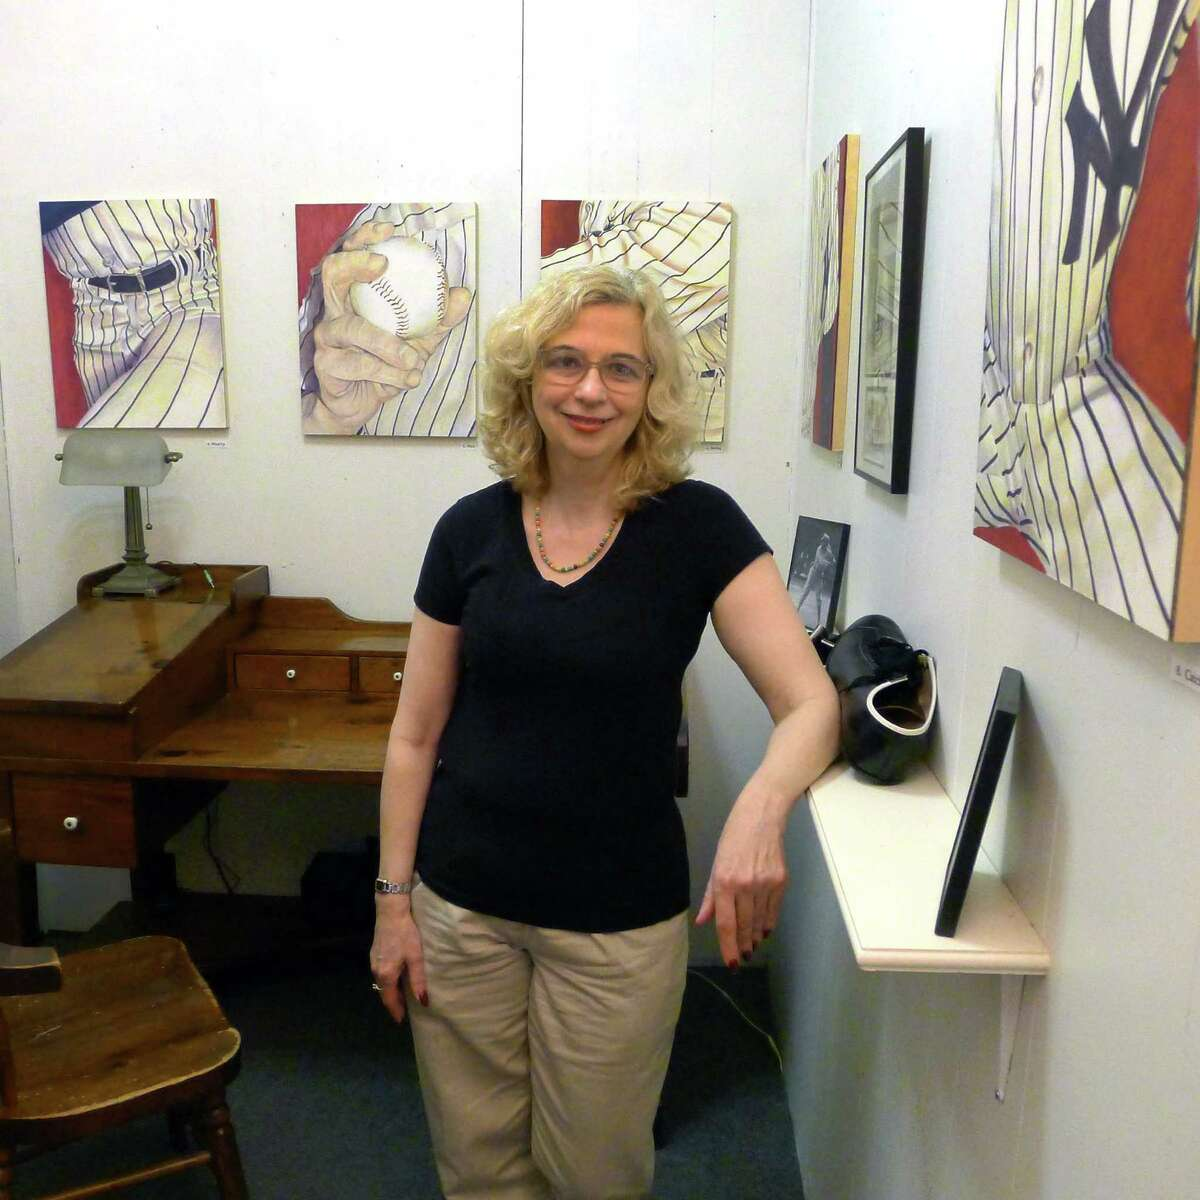 """Artist Lori Barraco Sylvester, who has an exhibit called """"pin stripes"""" featuring a series of painting showing the iconic Yankees uniform in Troy N.Y. Thursday May 24, 2012. (Michael P. Farrell/Times Union)"""